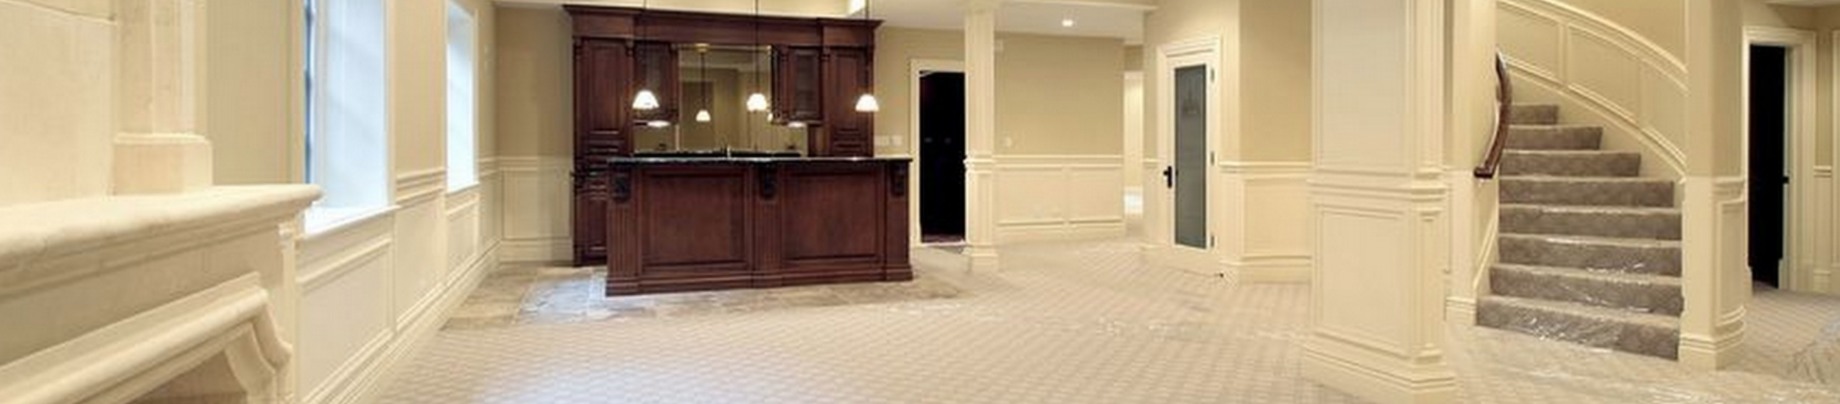 Basement Remodeling Virginia Maryland DC Basement Remodeling Virginia Maryland DC